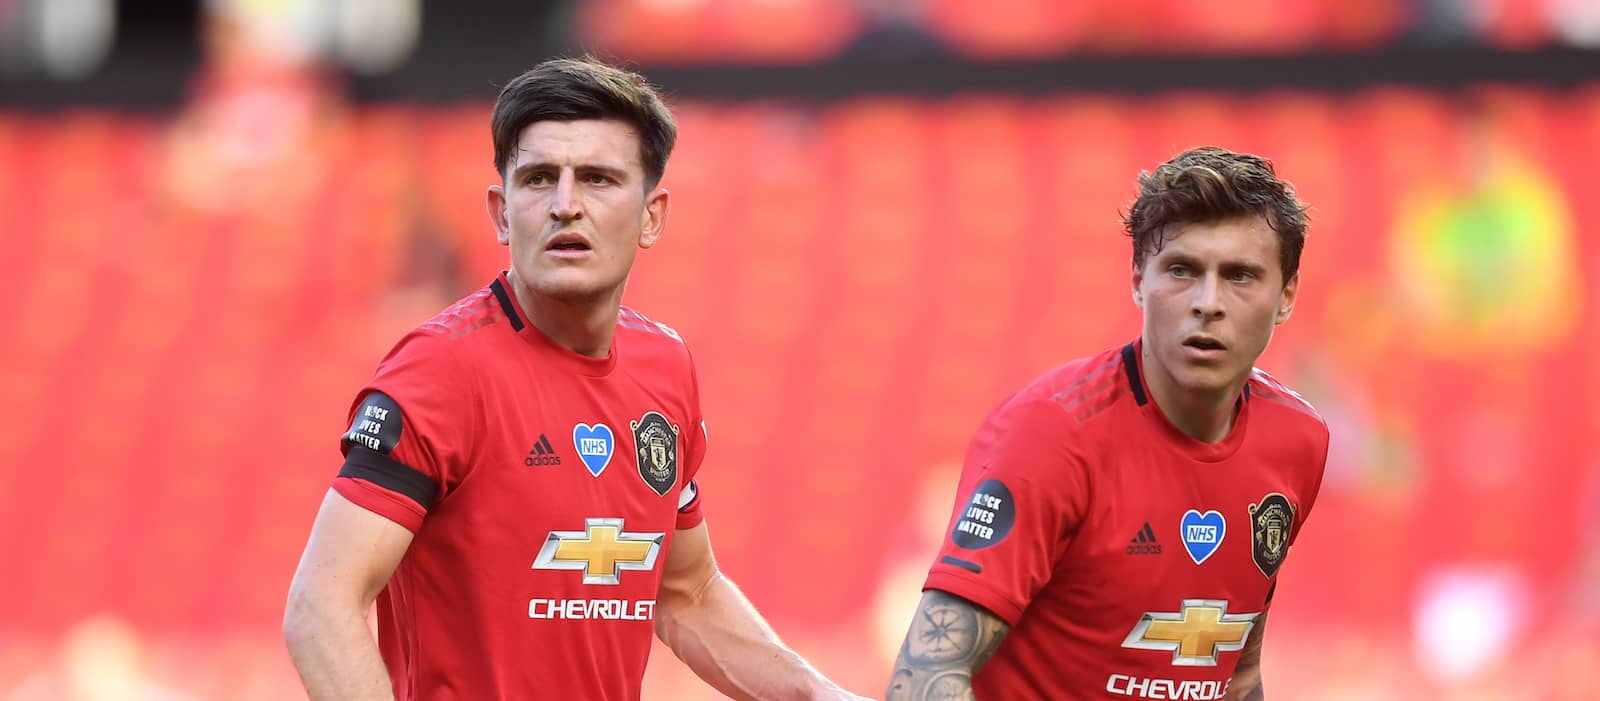 Victor Lindelof impresses in crucial win vs Leicester City